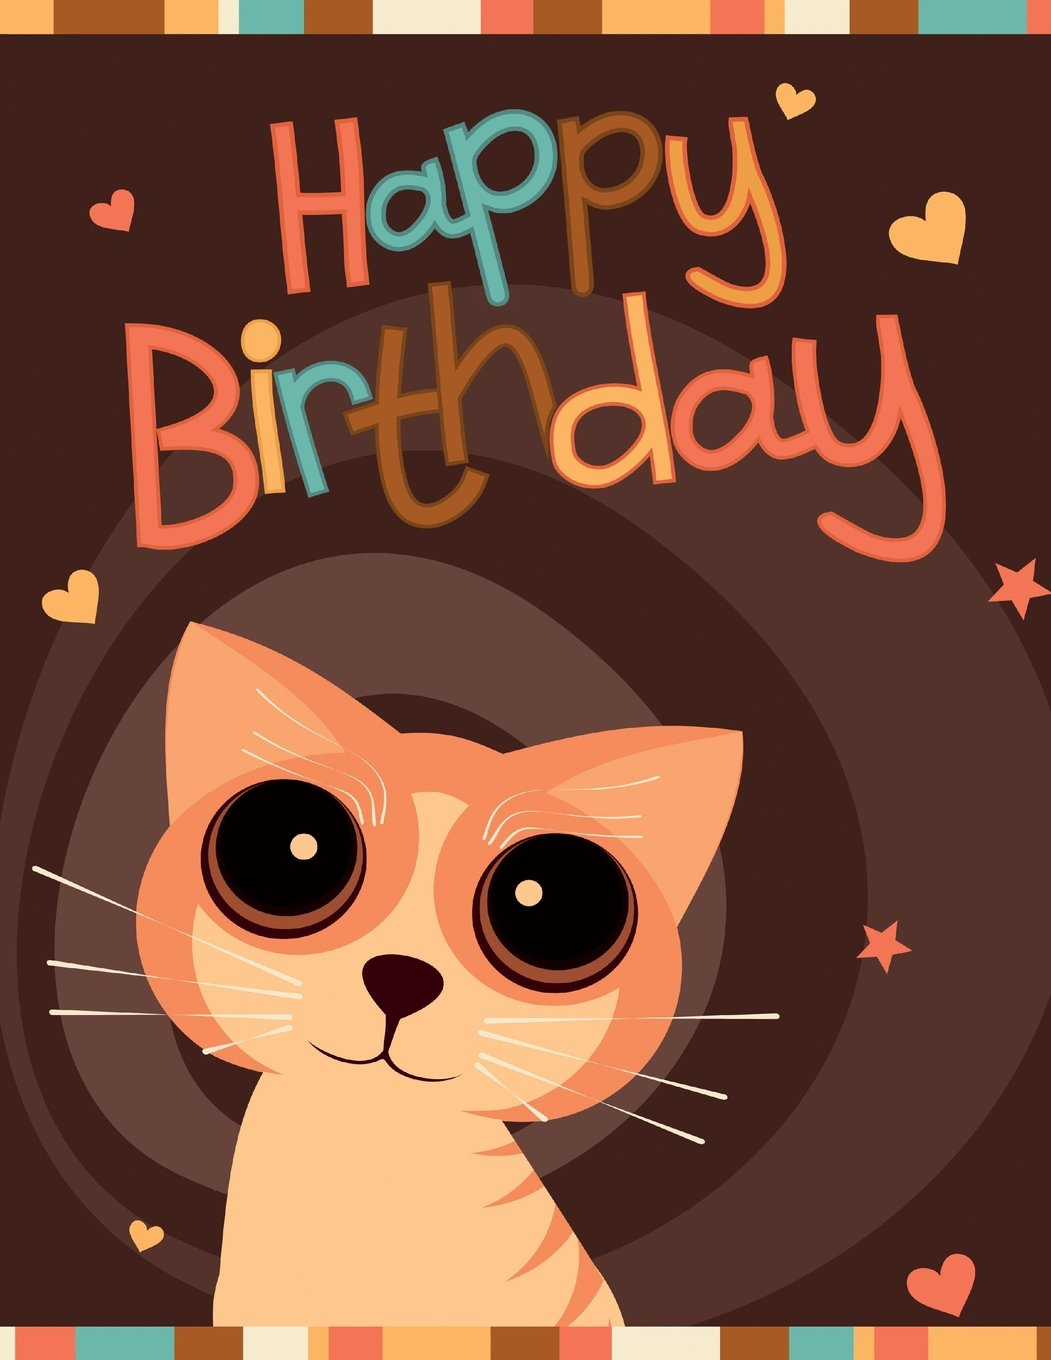 """Happy Birthday: Notebook, Journal, Diary, 365 Lined Pages, Birthday Gifts for Cat Lovers, Boys or Girls, Kids, Teens, Women or Men, Mom or Dad, ... Friend, Co-Worker, Book Size 8 1/2"""" x 11"""" ebook"""